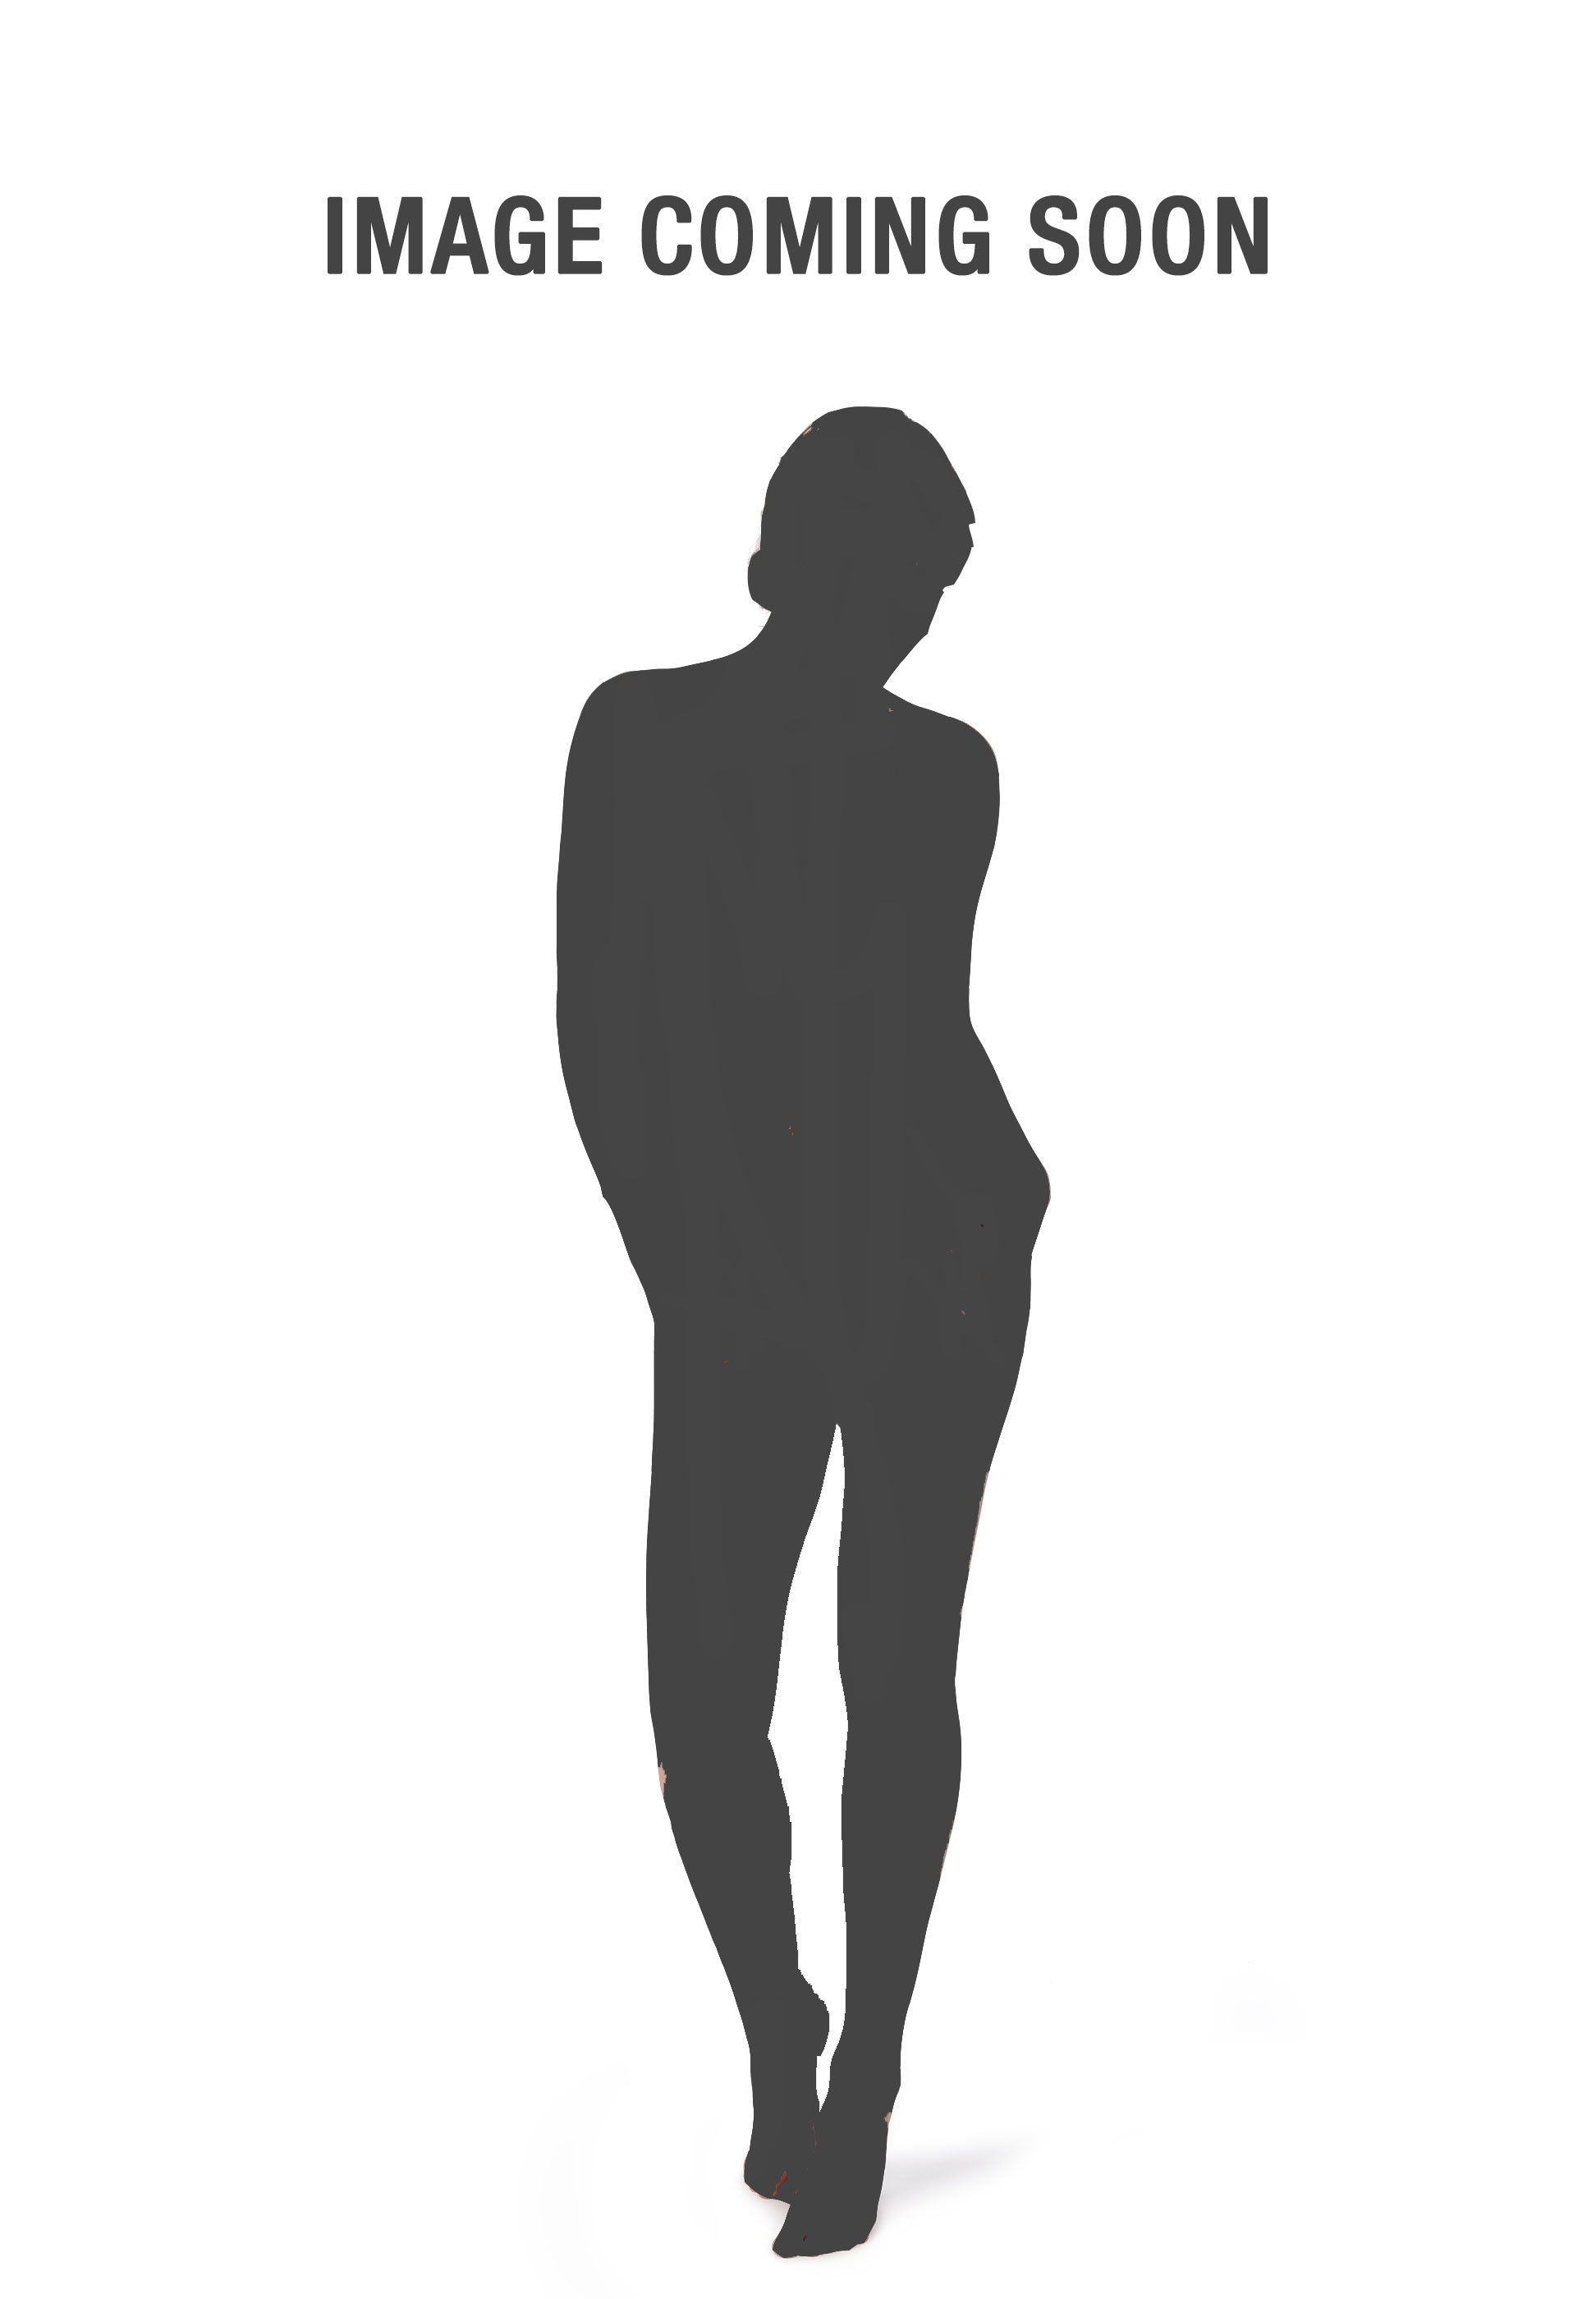 Huber_Basic_W_FinesseStickerei_camisole_015020_010500_060.jpg